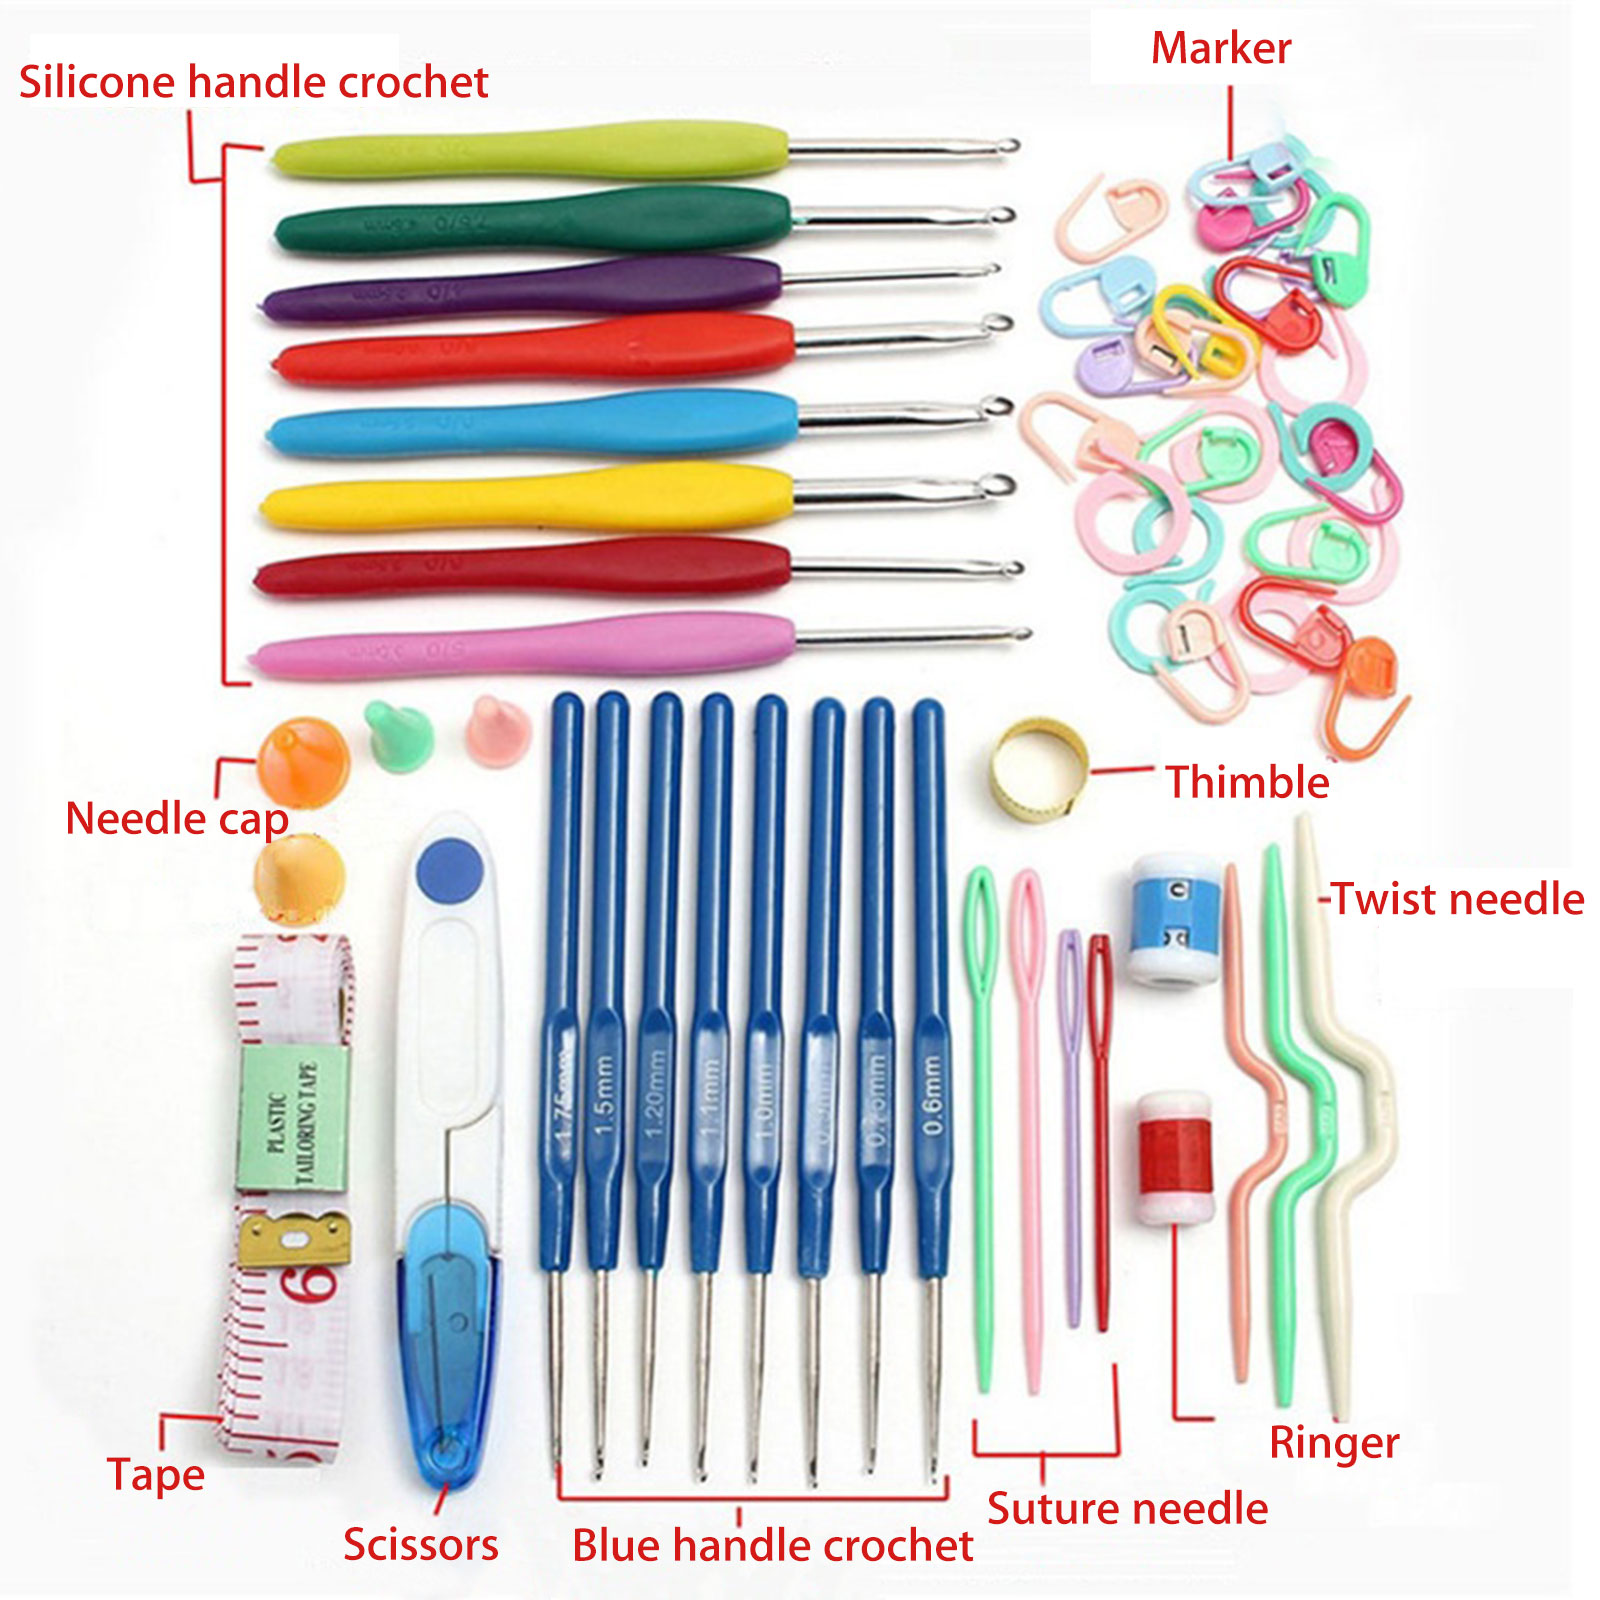 53Pcs Crochet Hooks Knitting Needles Knit Weave Craft Kit Sewing Grip Yarn J9X7